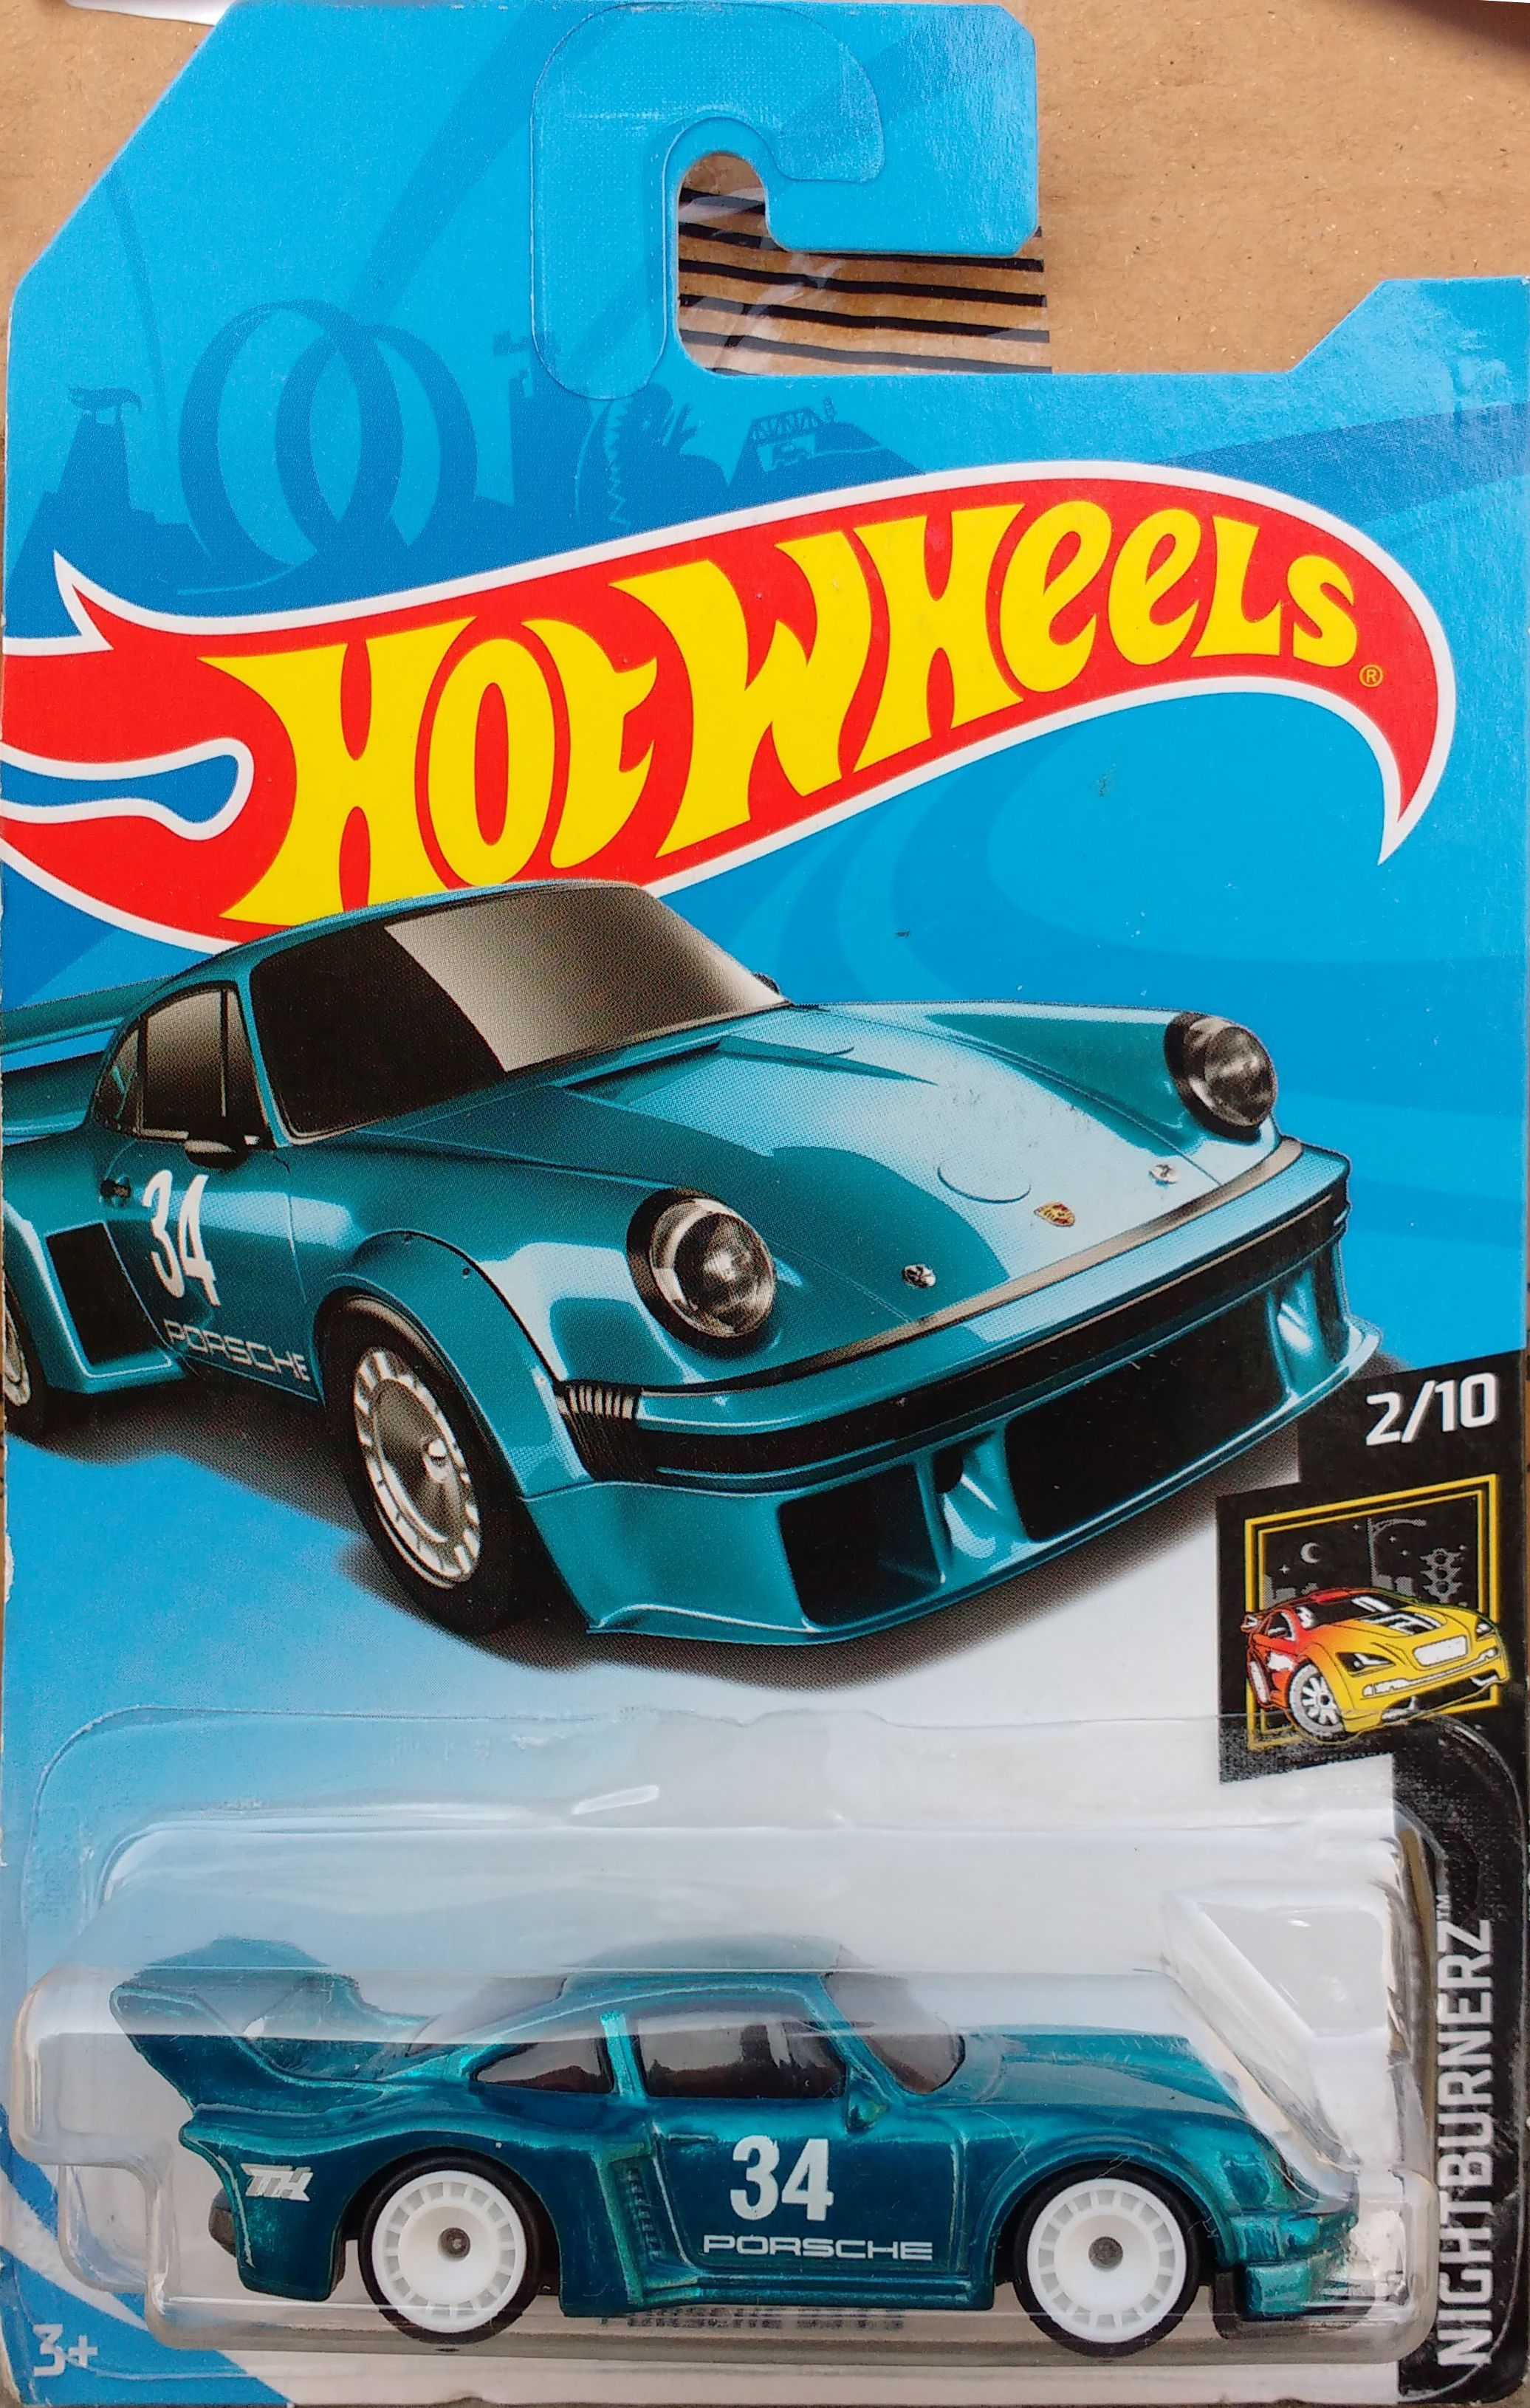 Hotwheels in 2020 Hot wheels, Toy car, Sports car